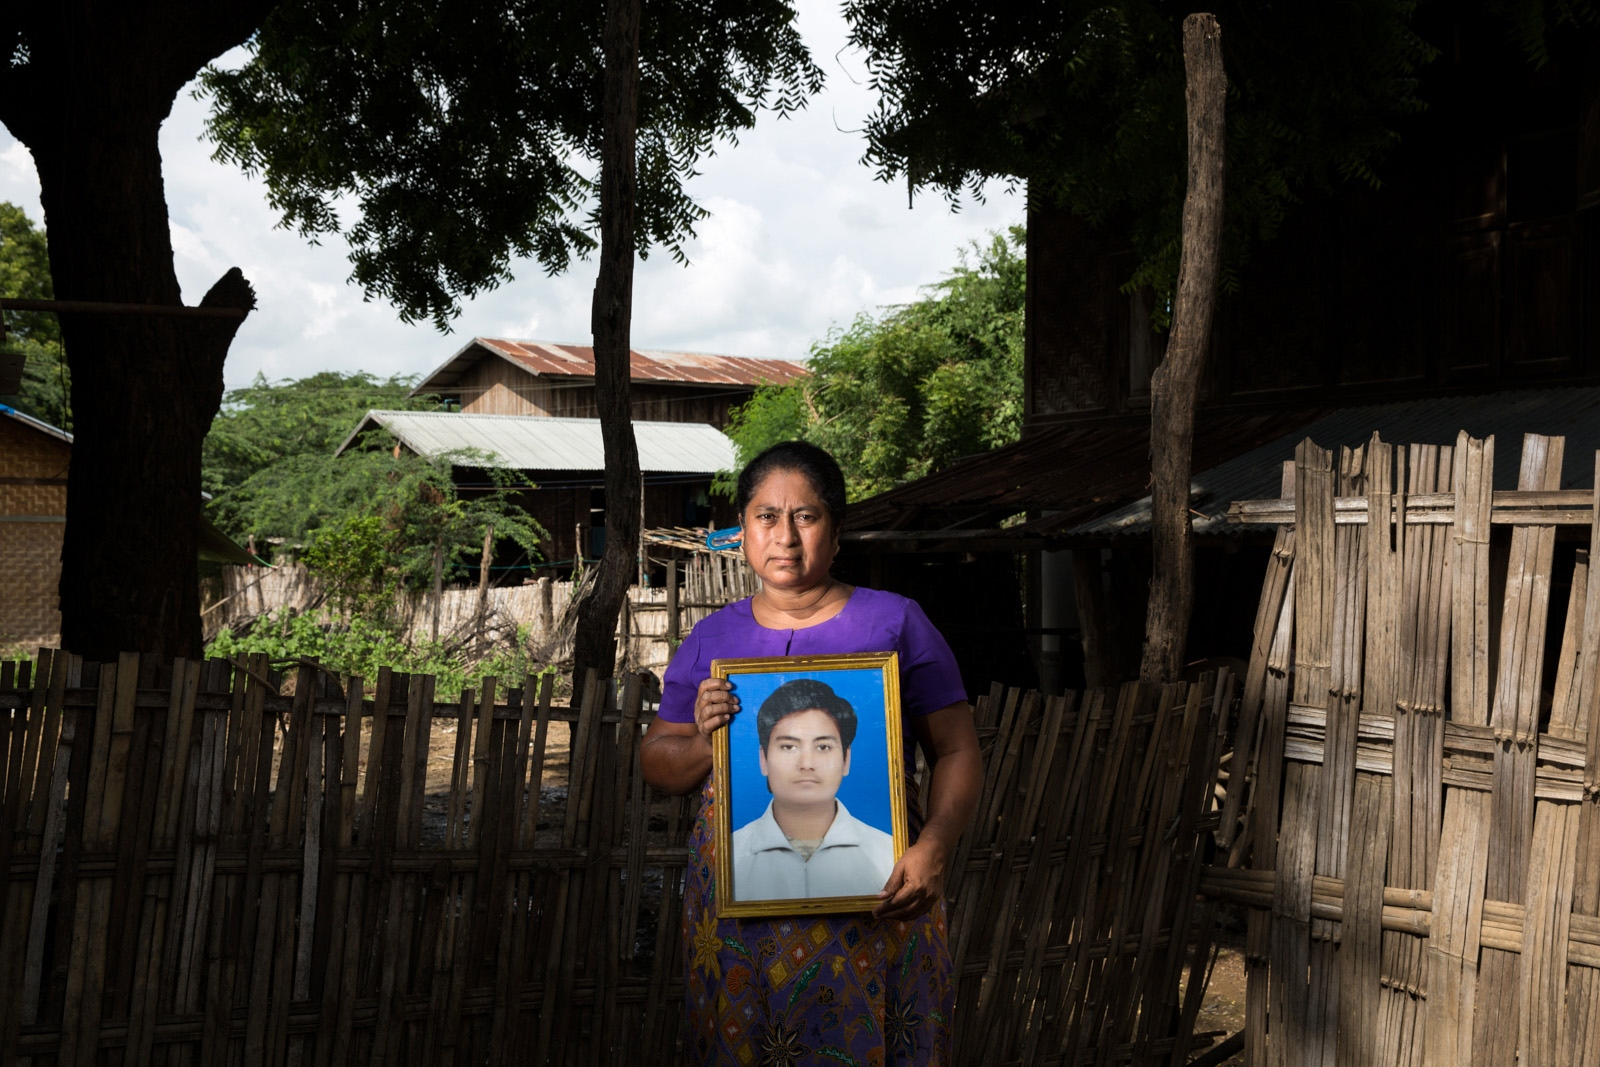 """Mother of arbitrarily detained Ye Ko, 24, holds her son's portrait. Special Branch officers arrested Ye Ko at a checkpoint near Lashio in northern Shan State on November 14, 2014 for allegedly establishing the """"Myanmar Muslim Army."""" Despite the government's failure to present evidence of the existence of the Myanmar Muslim Army or Ye Ko's connection to the group, on December 7, 2015, the Aung Myay Tharsan Township Court in Mandalay Region sentenced Ye Ko to five years in prison under Section 5(J) of the 1950 Emergency Provisions Act. In October 2016, the Myanmar government repealed the notoriously controversial 1950 Emergency Provisions Act, yet Ye Ko remained detained in Mandalay Obo prison under the now defunct Act."""